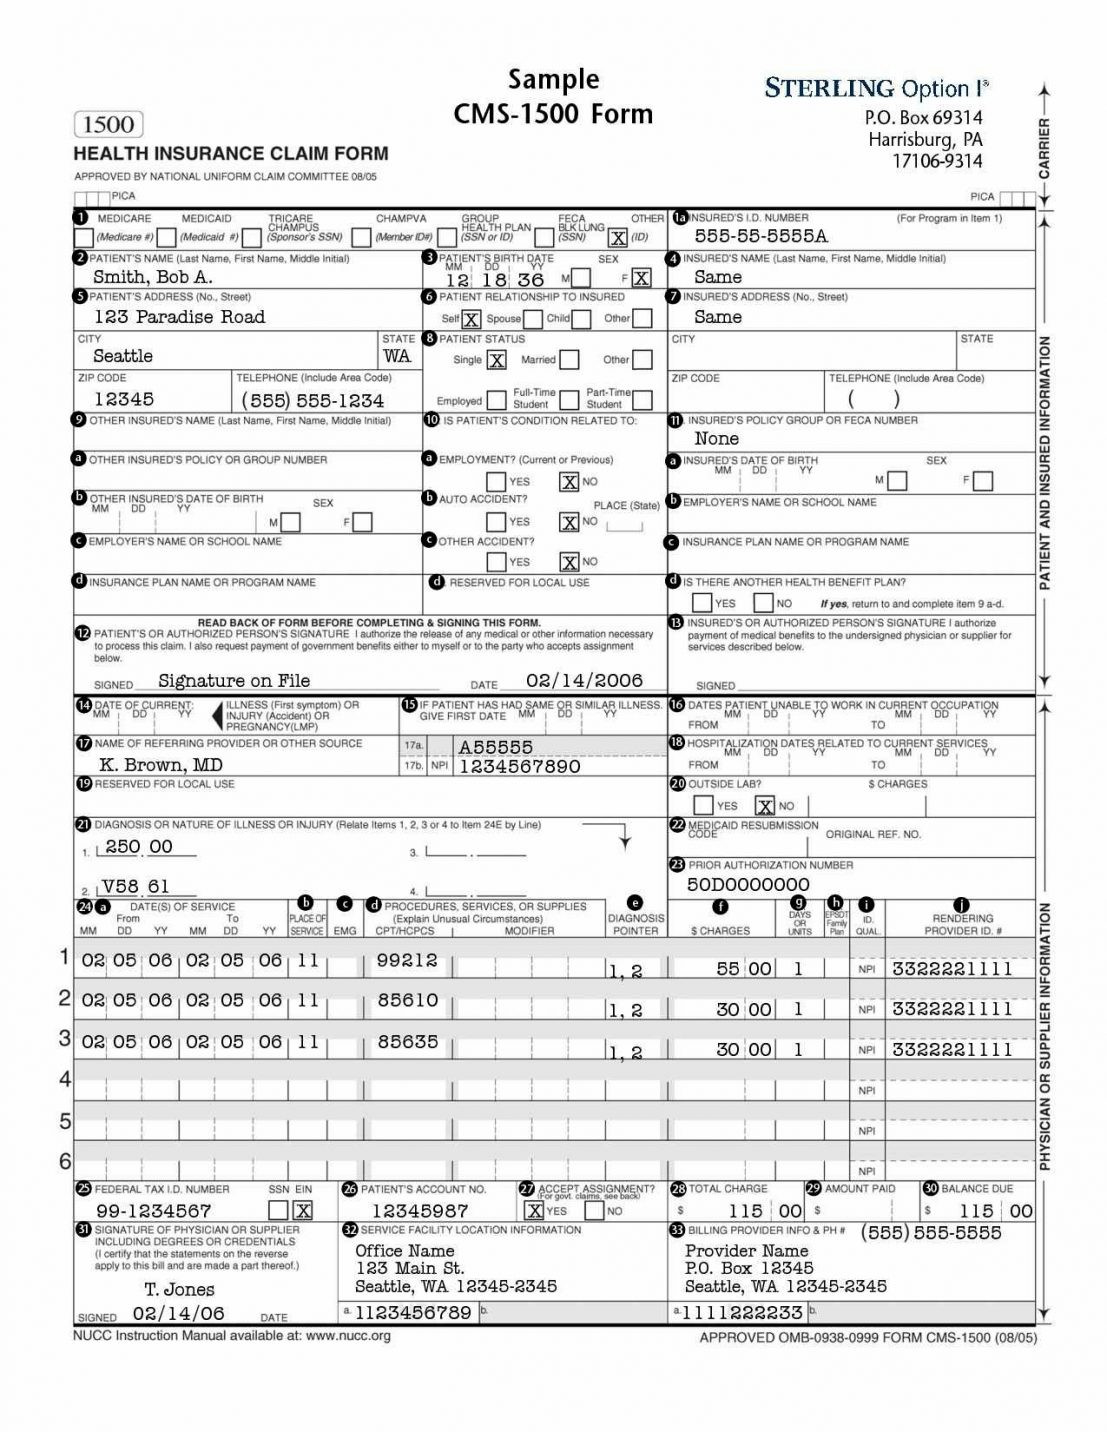 Hcfa 1500 Claim Form Unique Hcfa Claim Form Cms Version 02 12 2 Essential Also Enlarge Cms Forms